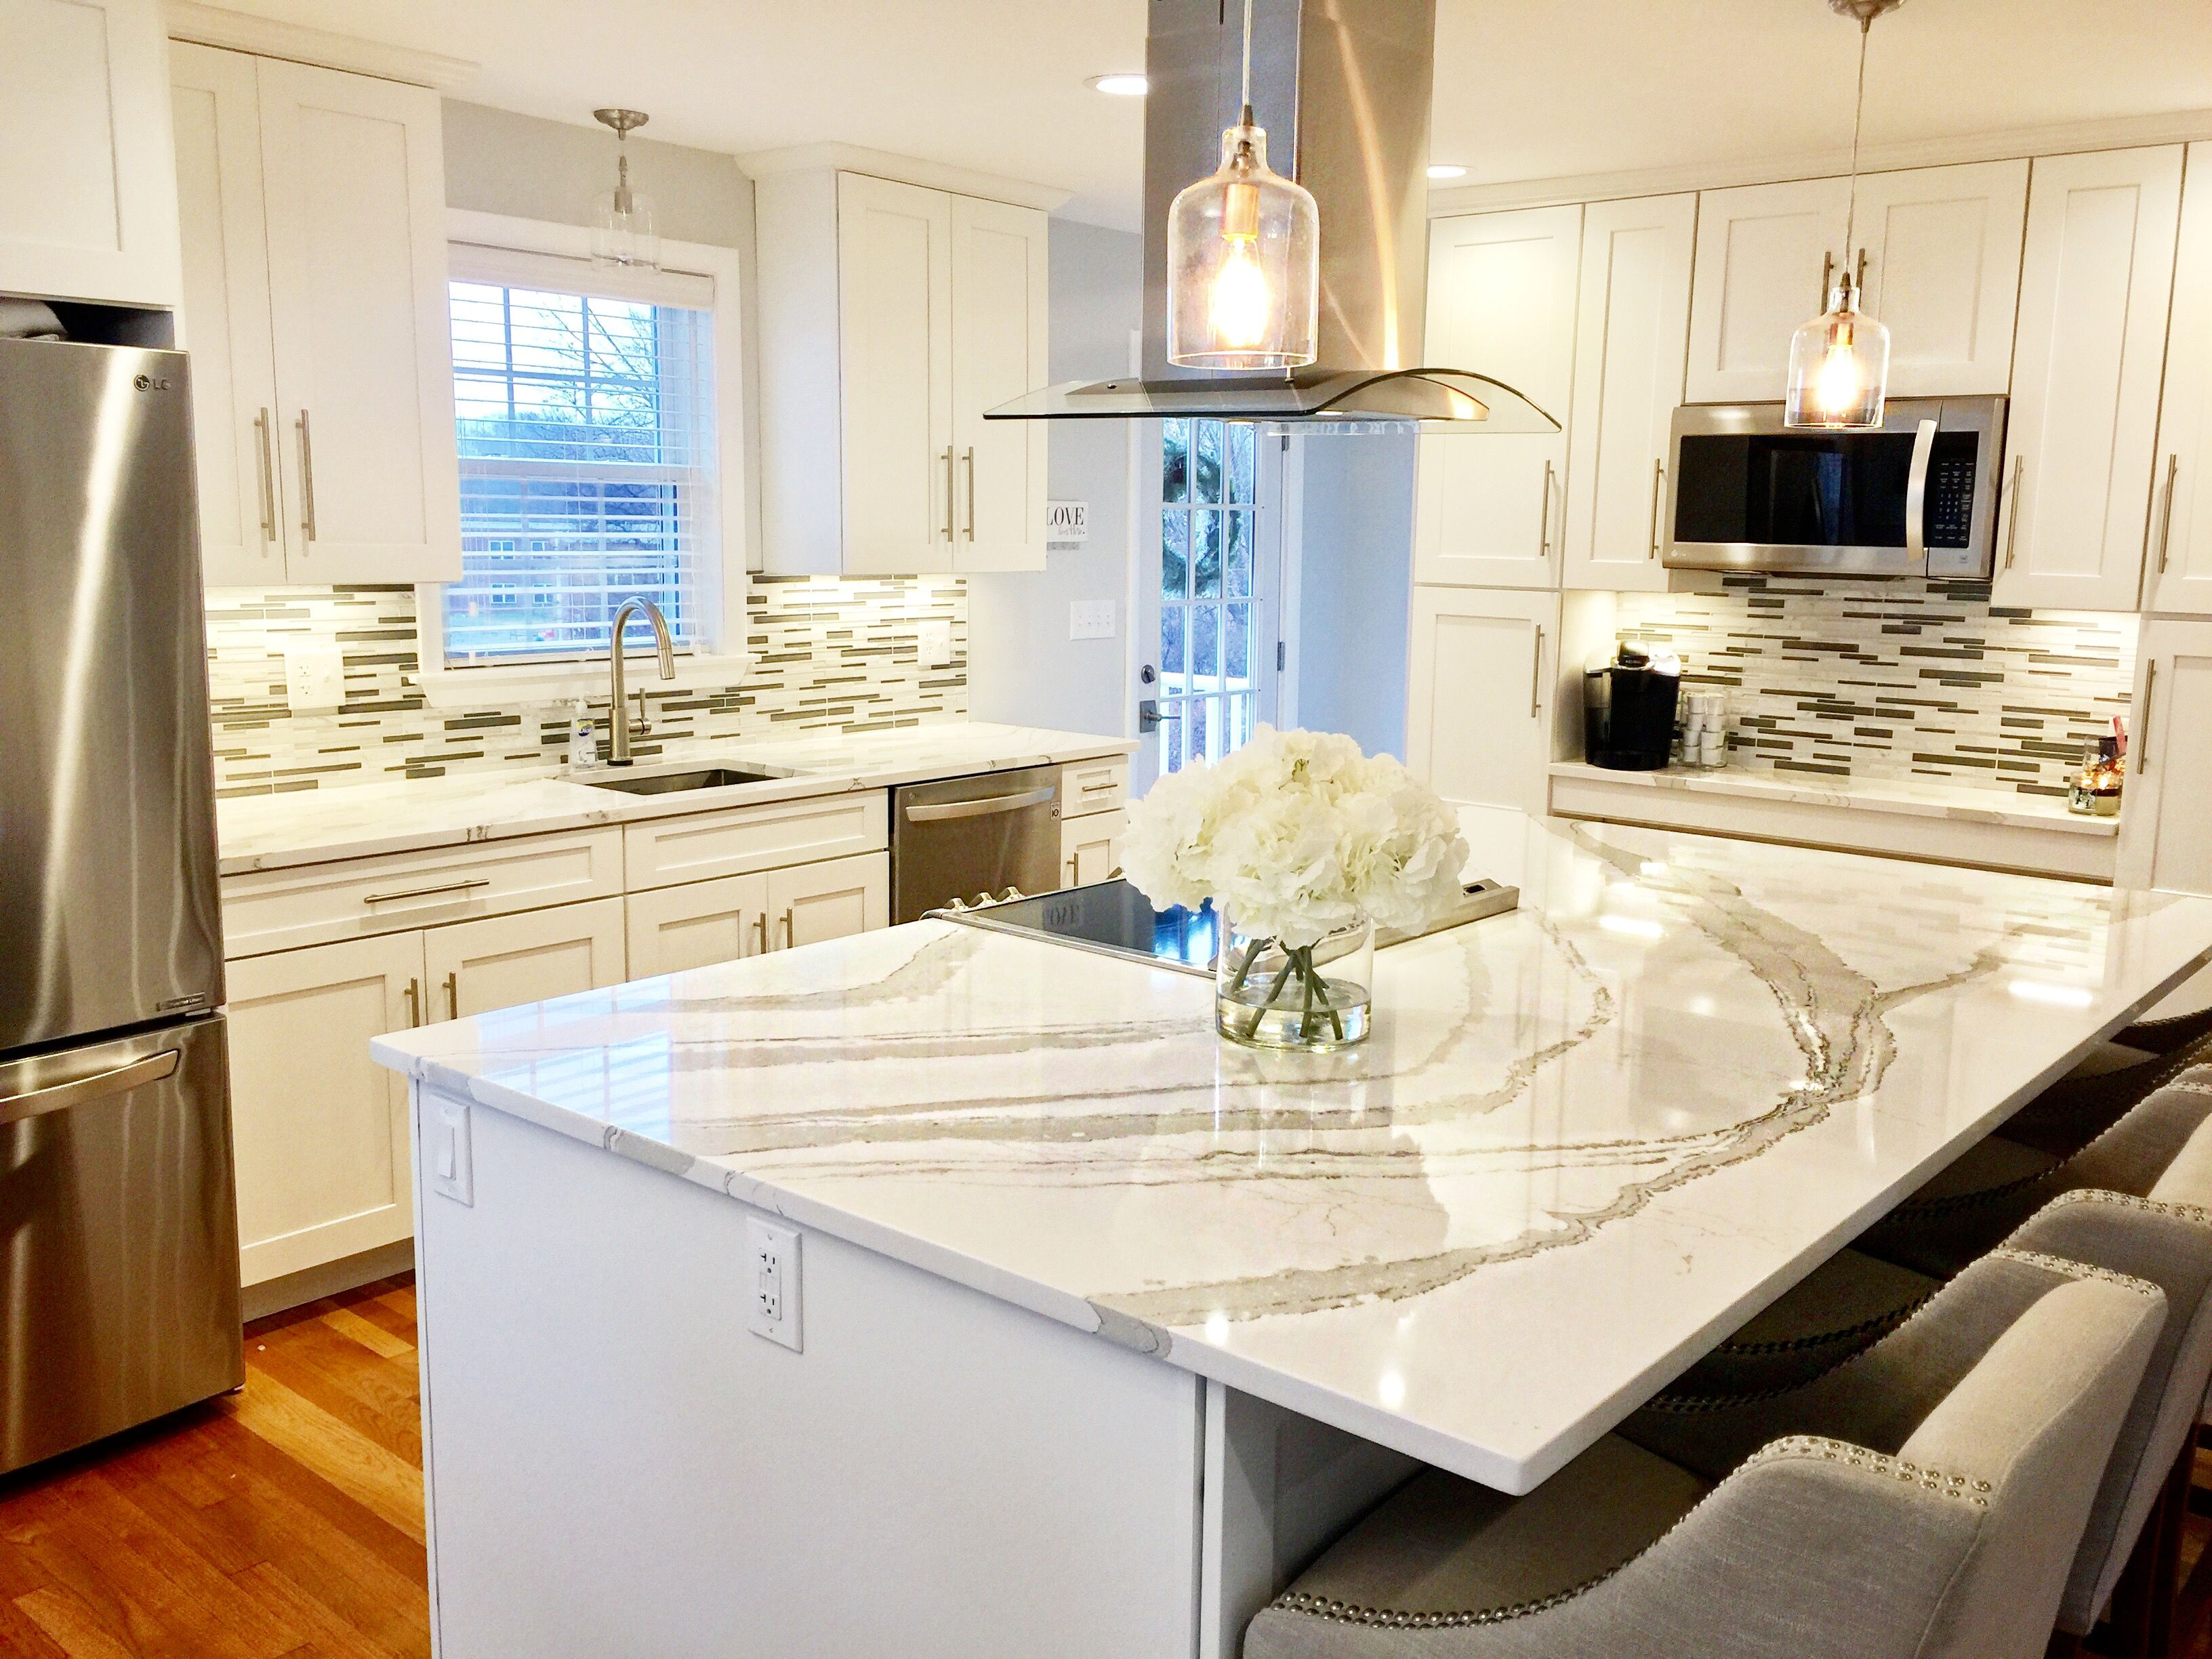 White shaker kitchen cabinets, white and gray Quartz from